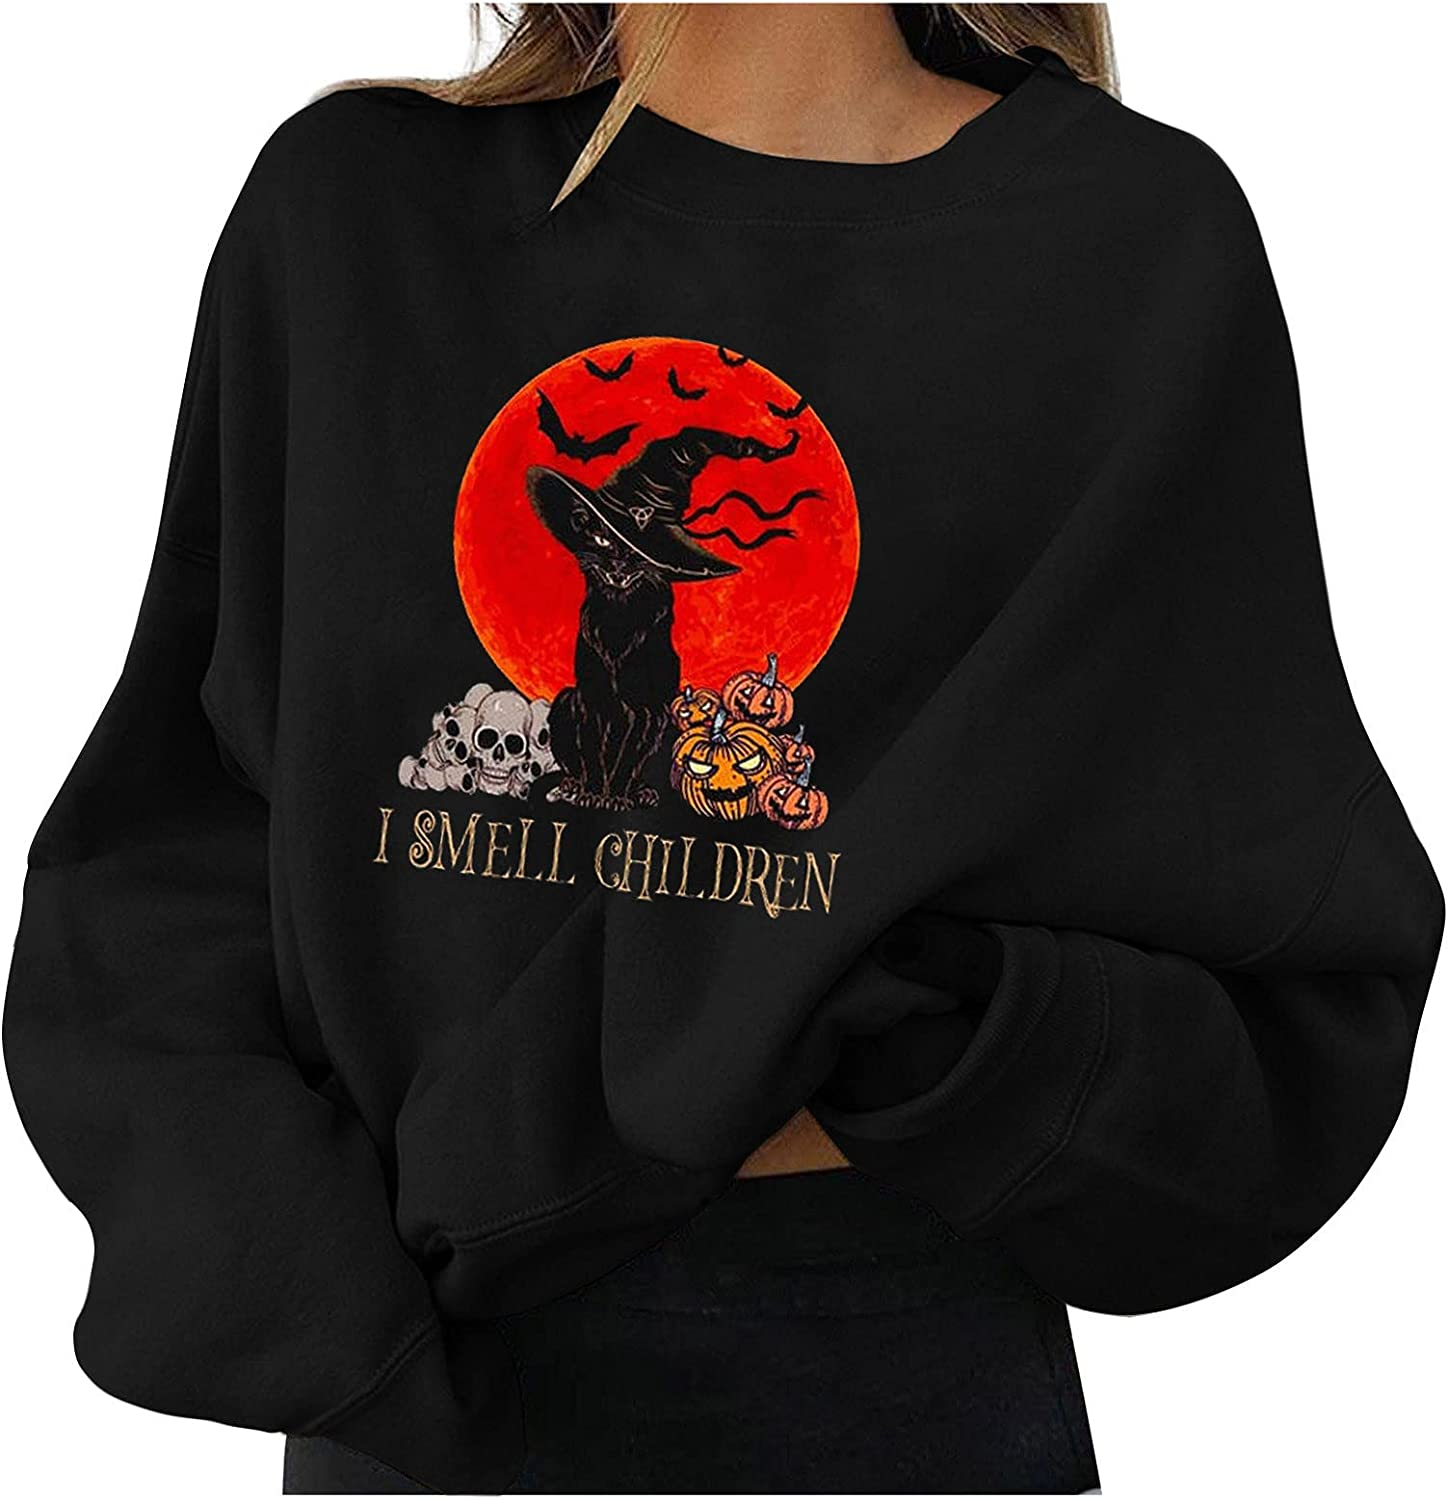 Crewneck Sweatshirts for Women, Women's Cardigan Sweaters for Women with Pocketes Long Sleeve Casual Lightweight Open Front Cardigan